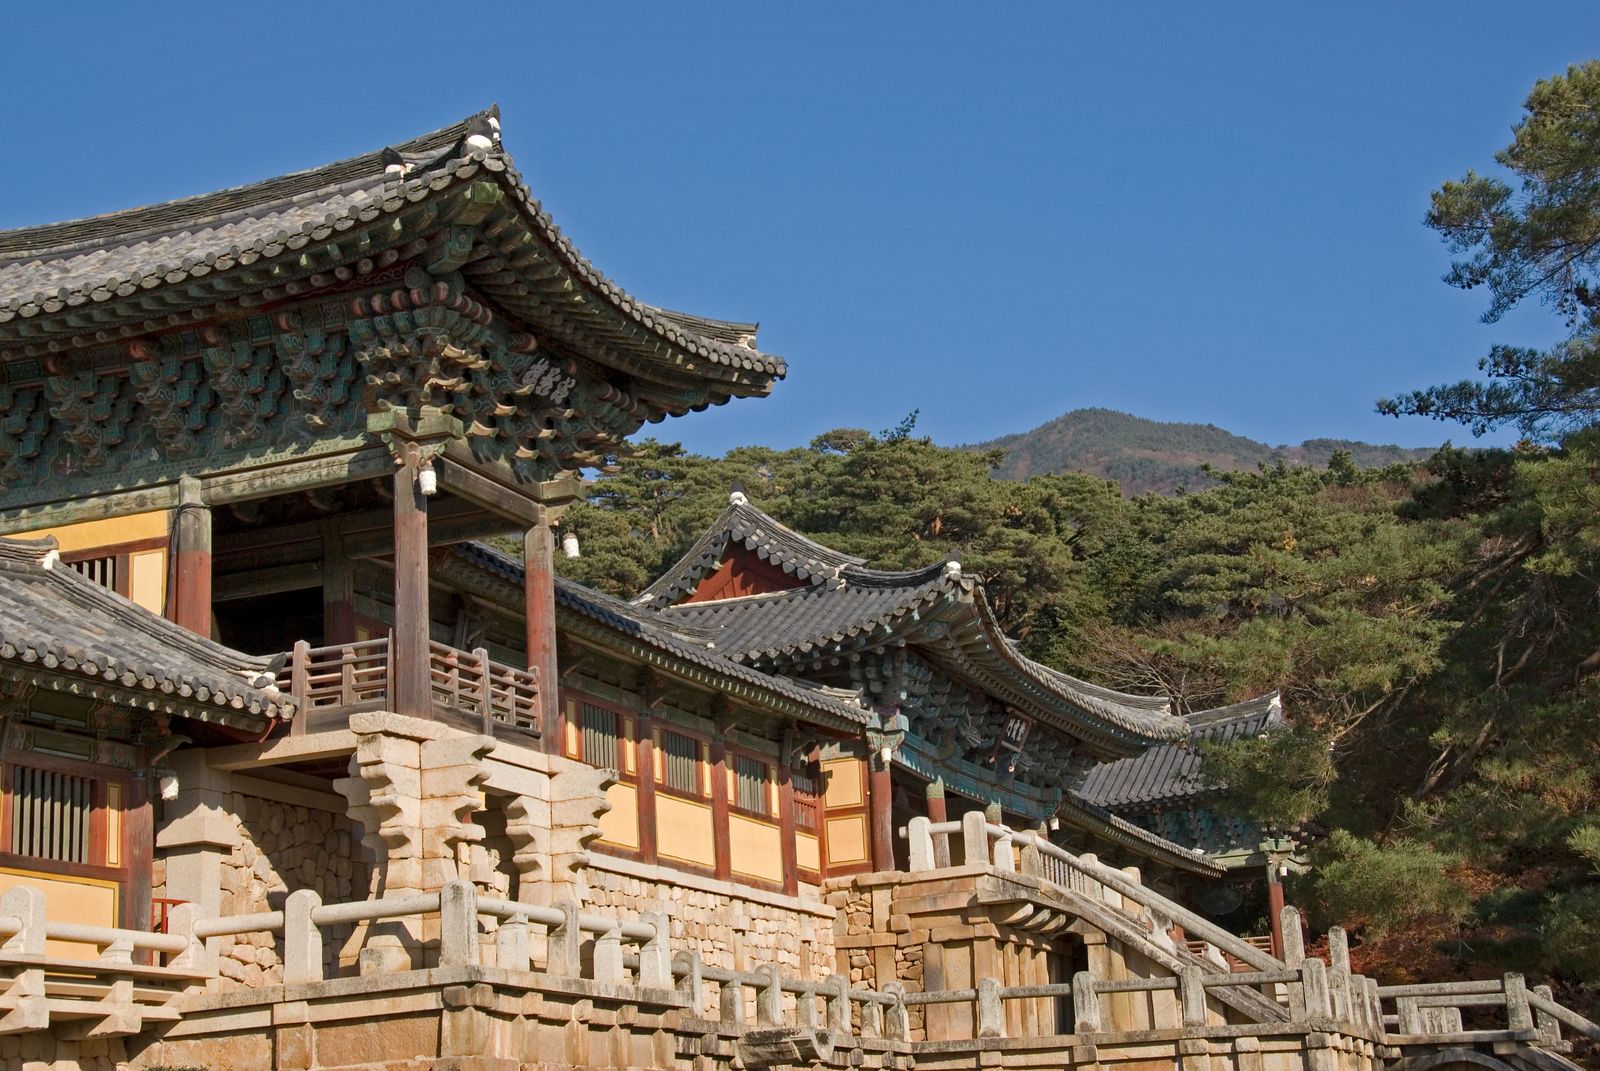 Seokguram Grotto and Bulguksa Temple - UNESCO World Heritage Site